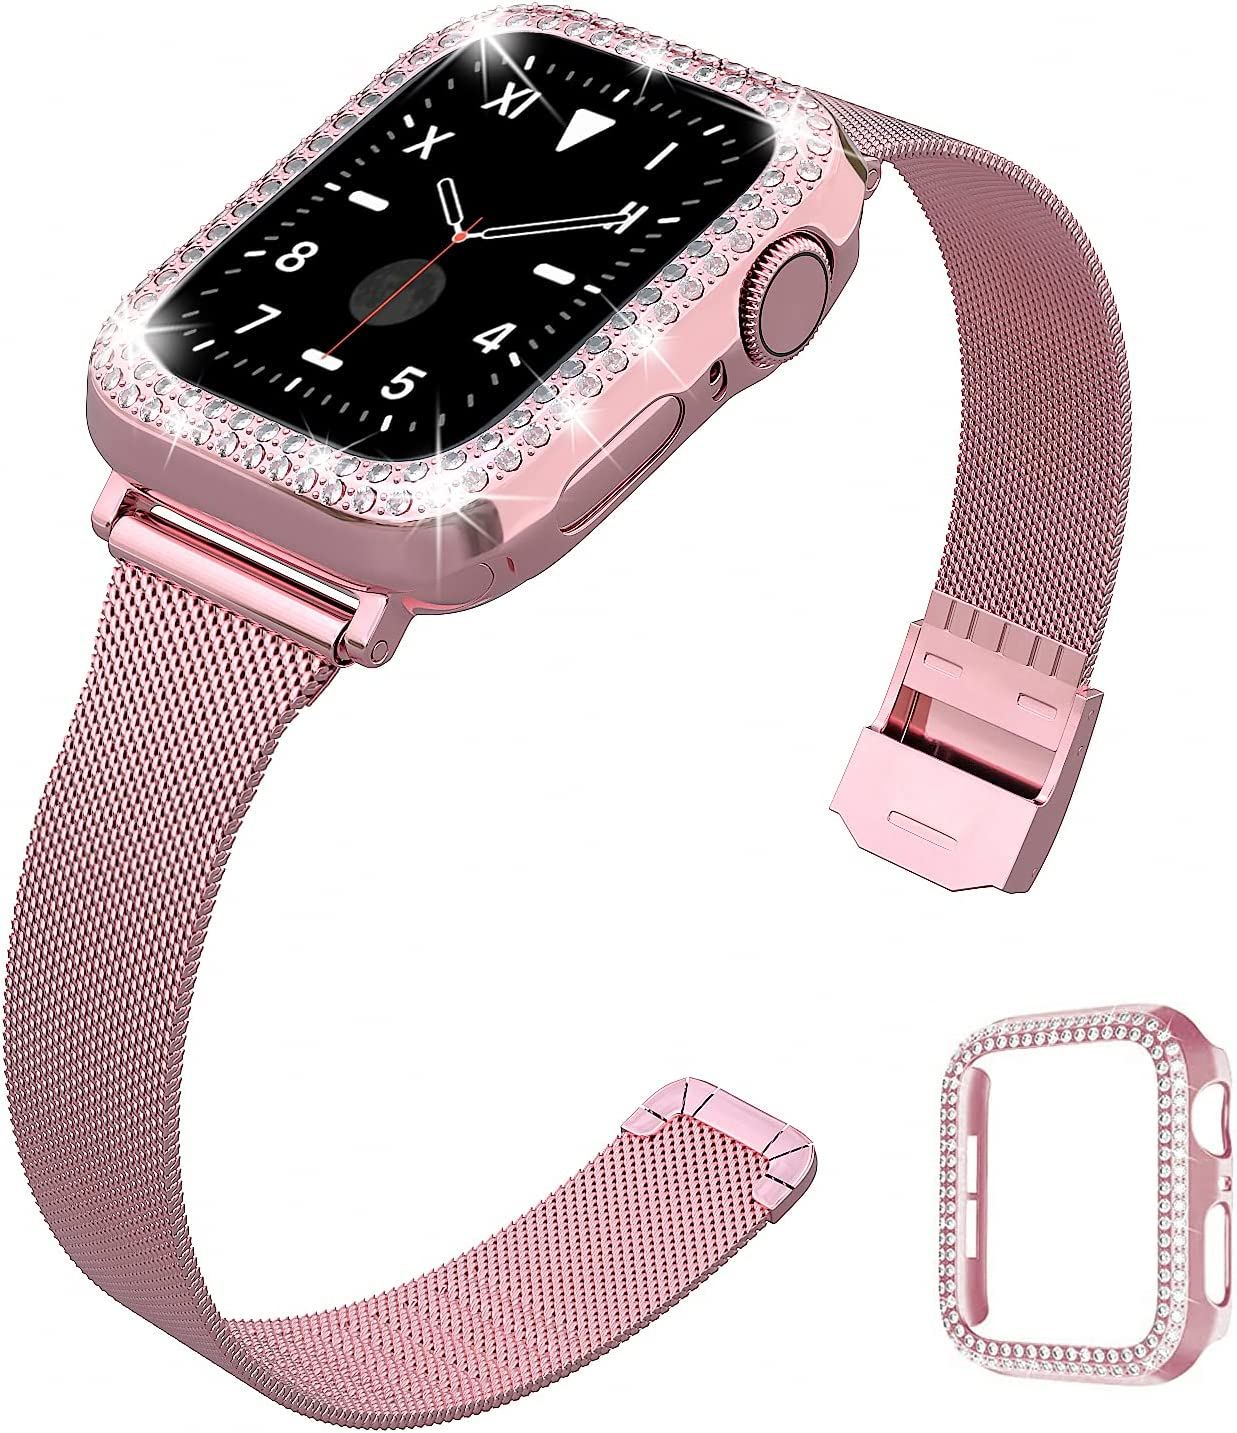 QVLANG Compatible for Apple Watch 38mm Band Series 3/2/1, Slim Stainless Steel Loop Mesh Strap with Women Bling Diamond Case for Apple Watch Series 3/2/1 (Rose Pink, 38mm)